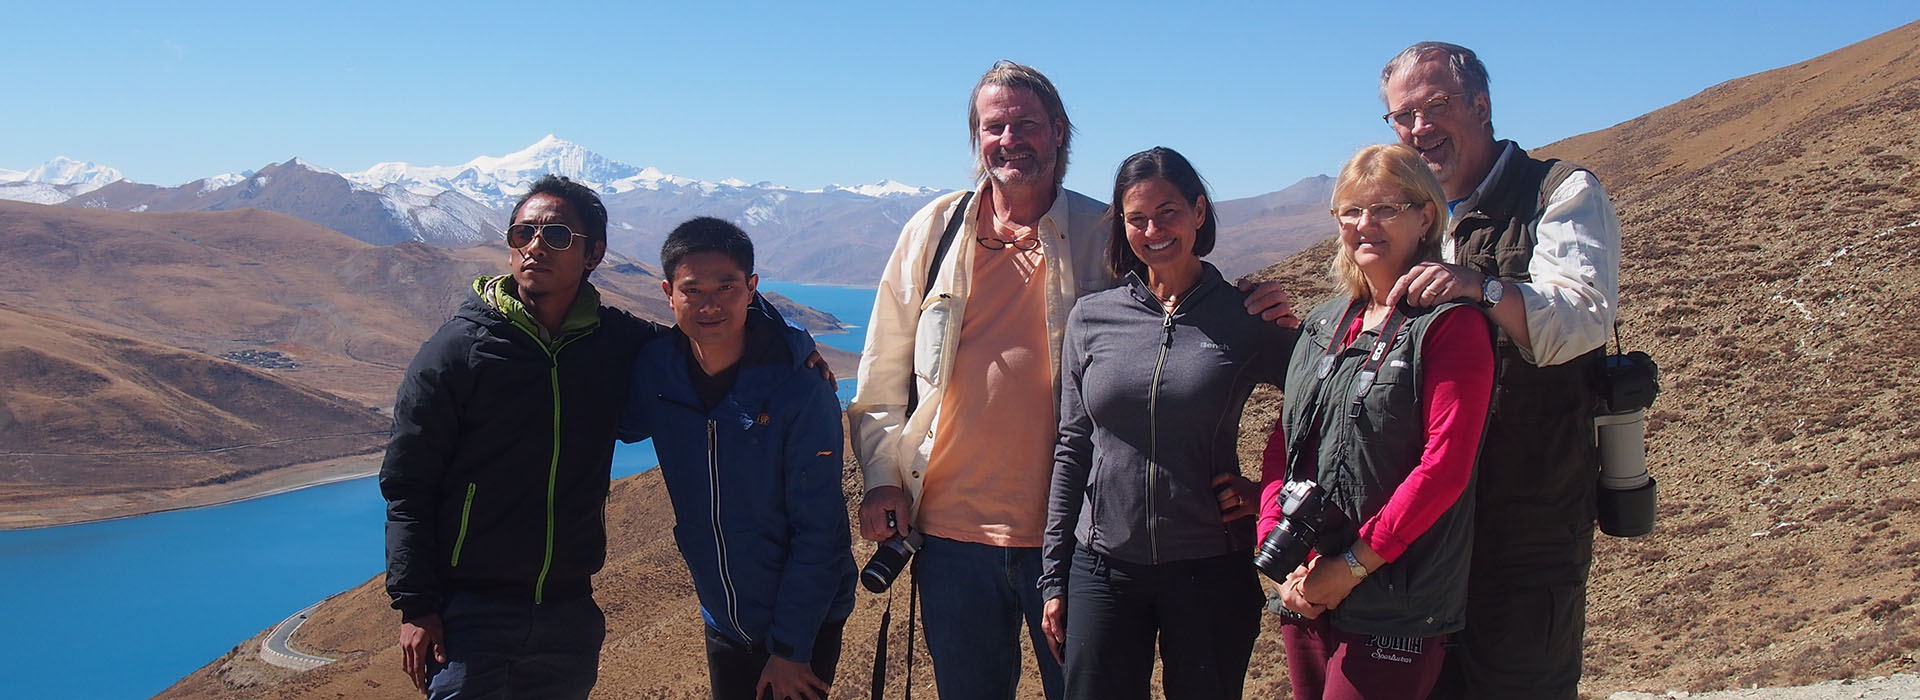 Tibet Tours 2018/2019 – private service at best price!